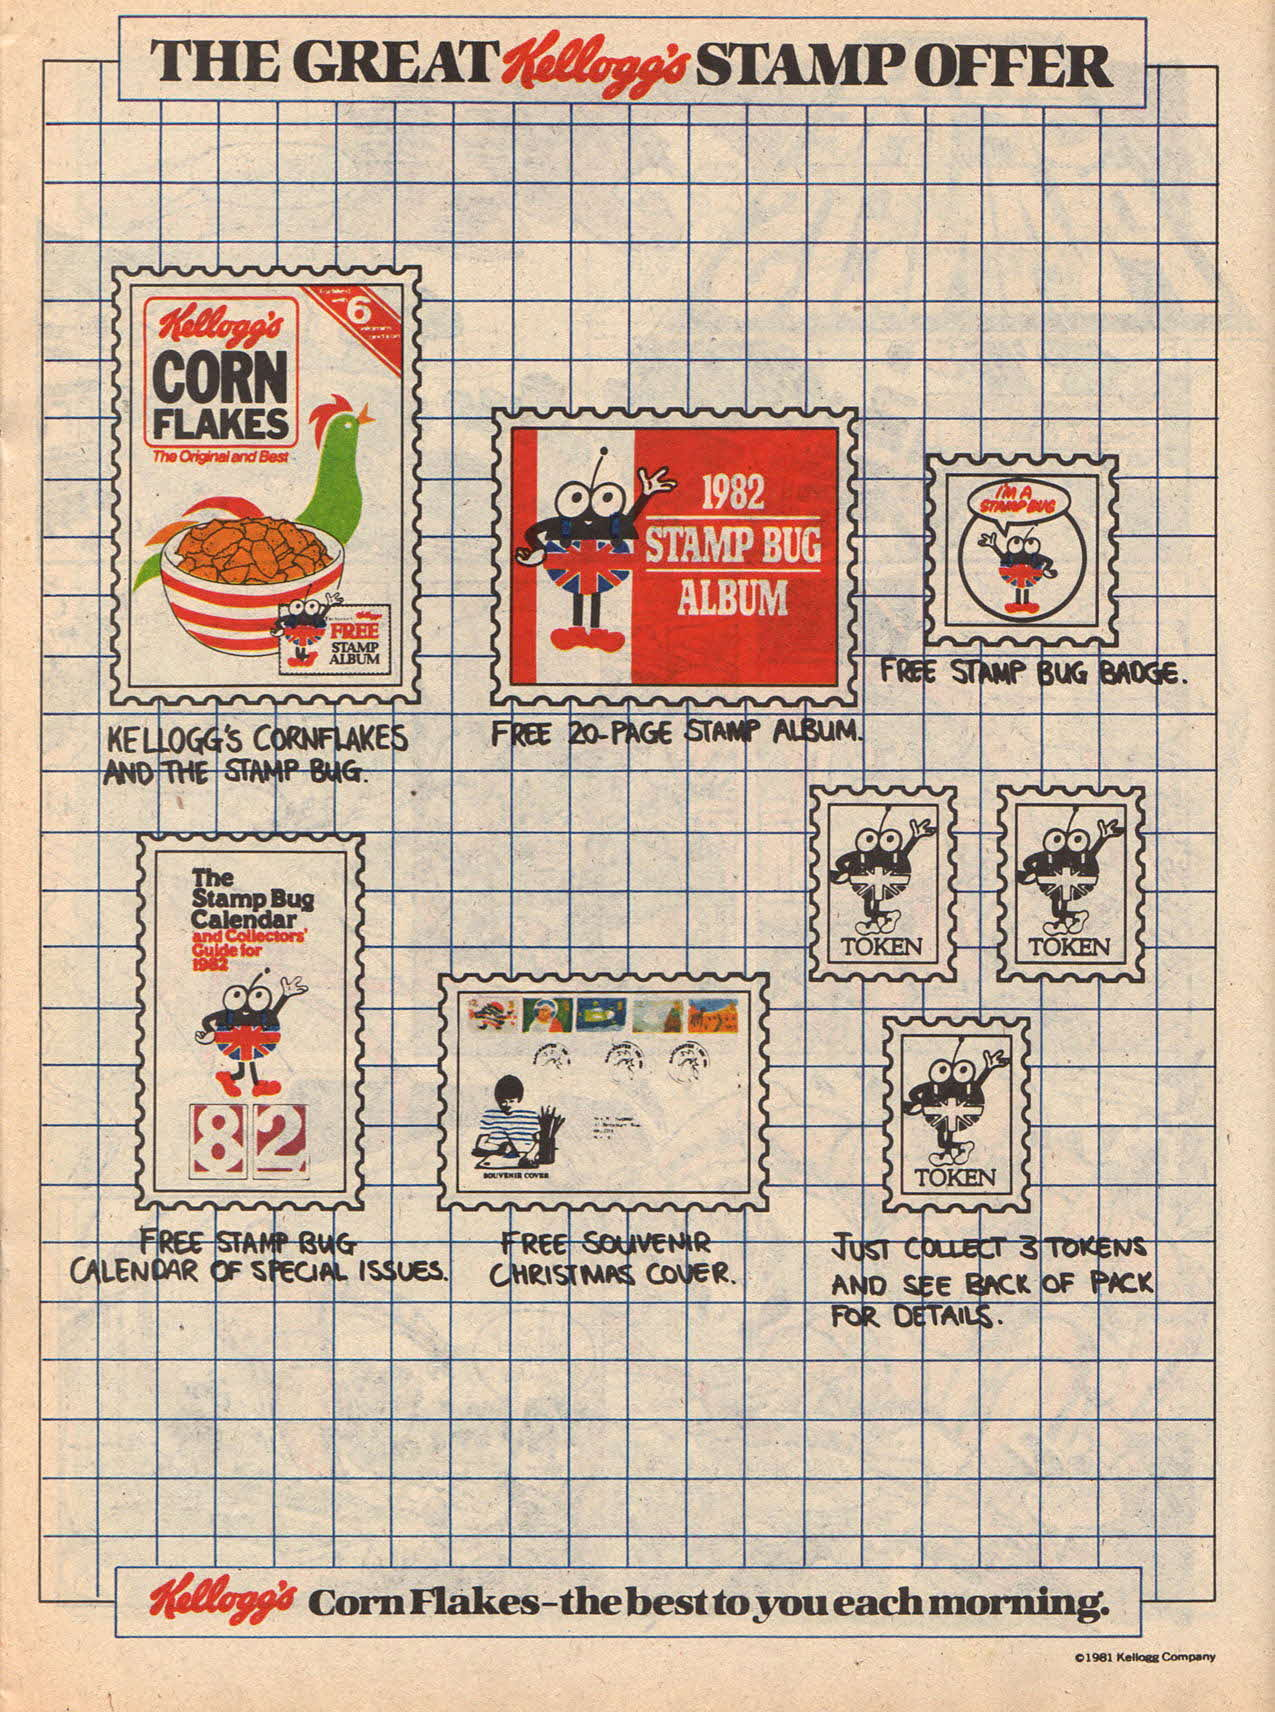 1981 Cornflakes Stamp Offer Christmas